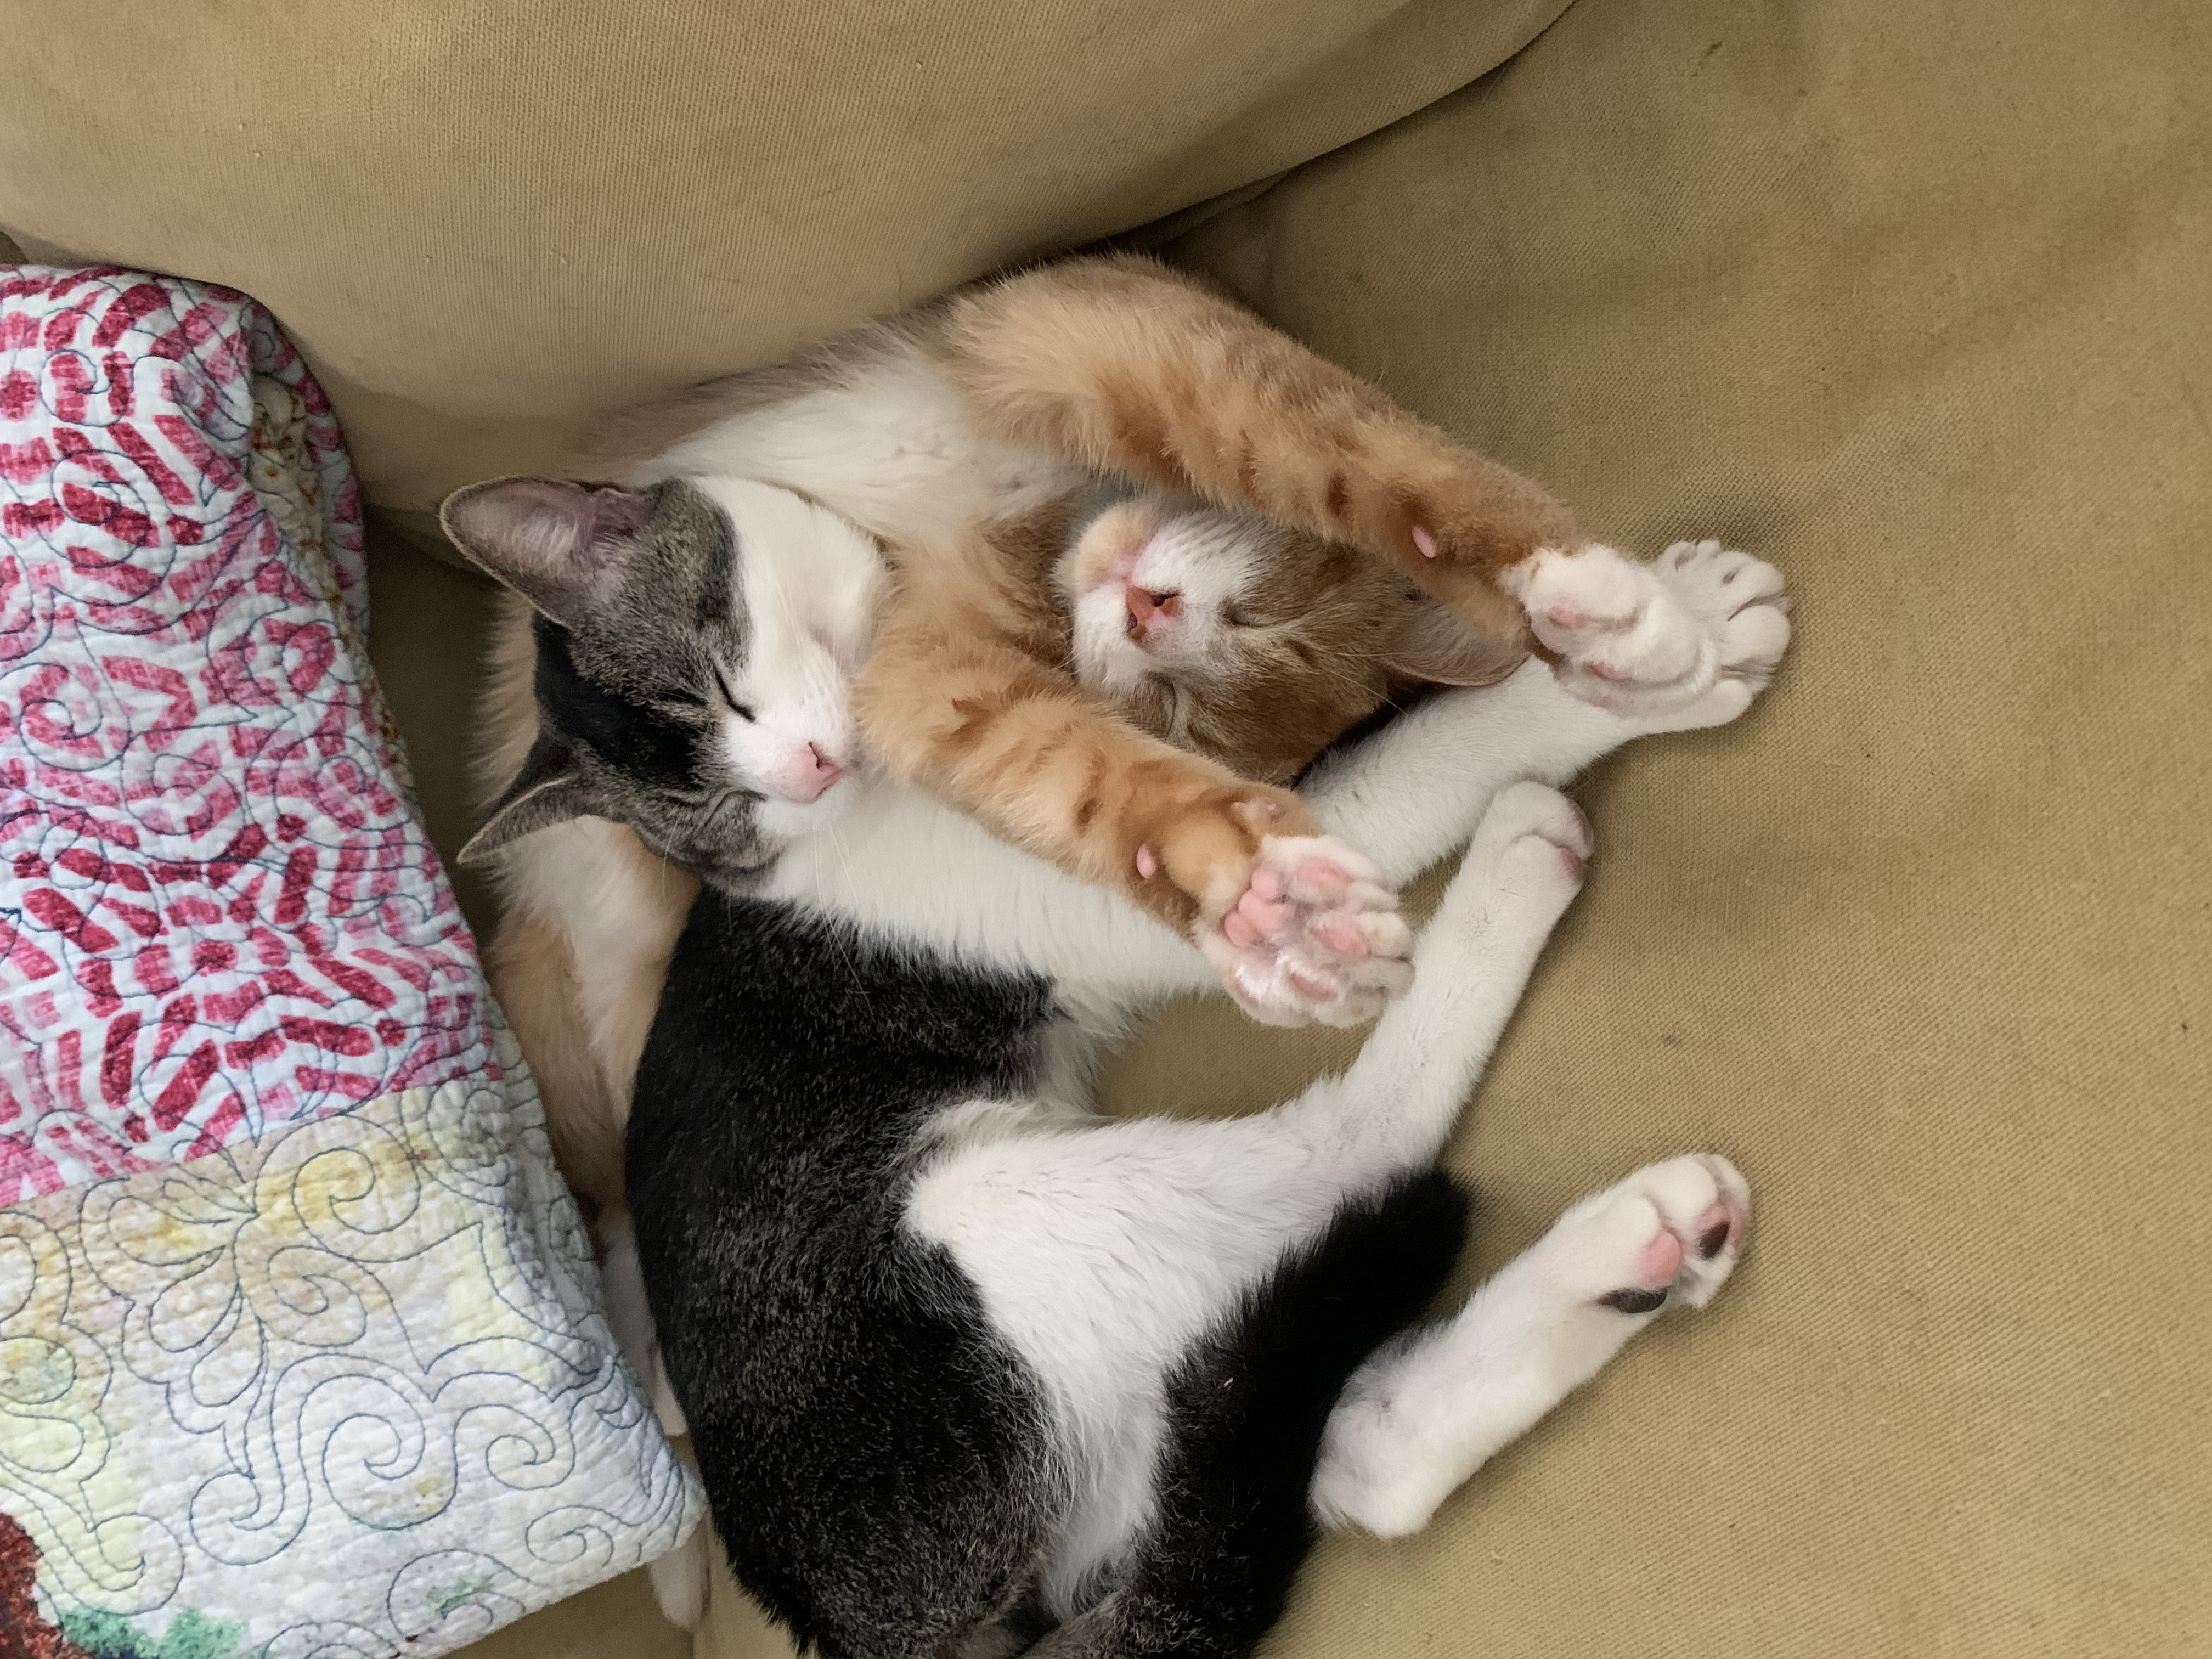 a picture of Georgie and Luda a cat that needs a foster home.